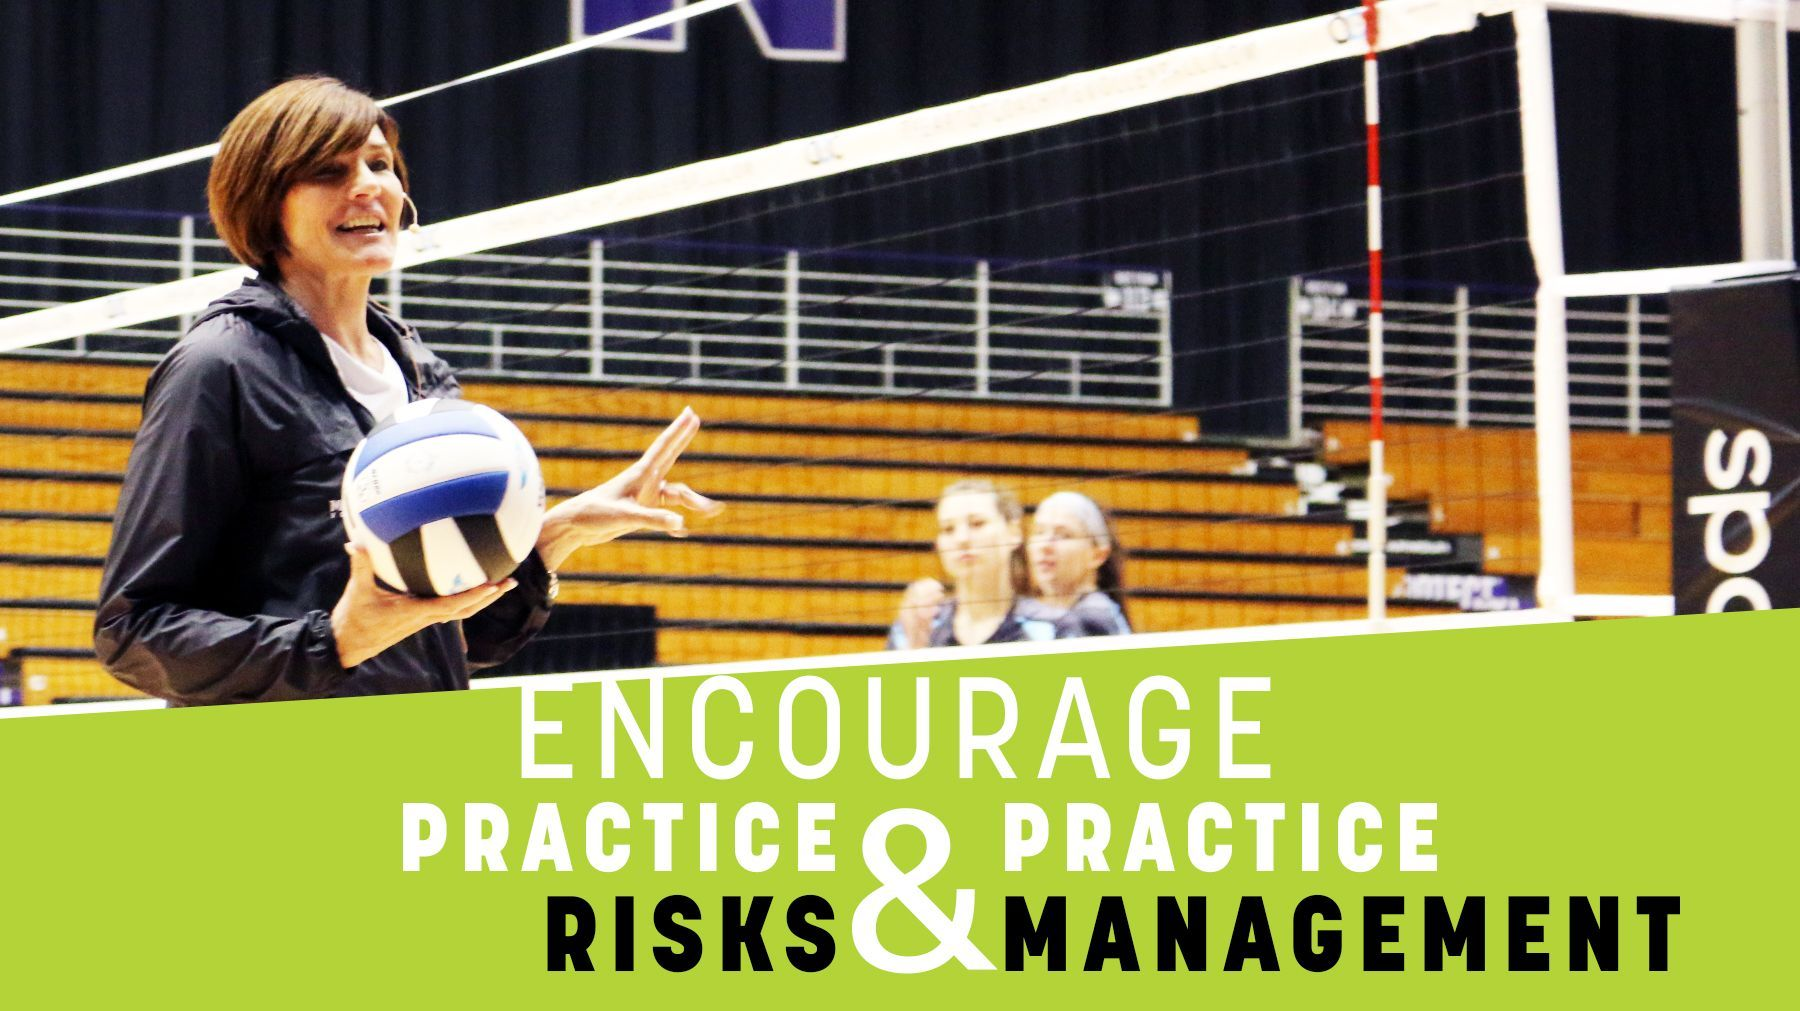 Encourage Practice Risks And Practice Management The Art Of Coaching Volleyball Coaching Volleyball Coaching Volleyball